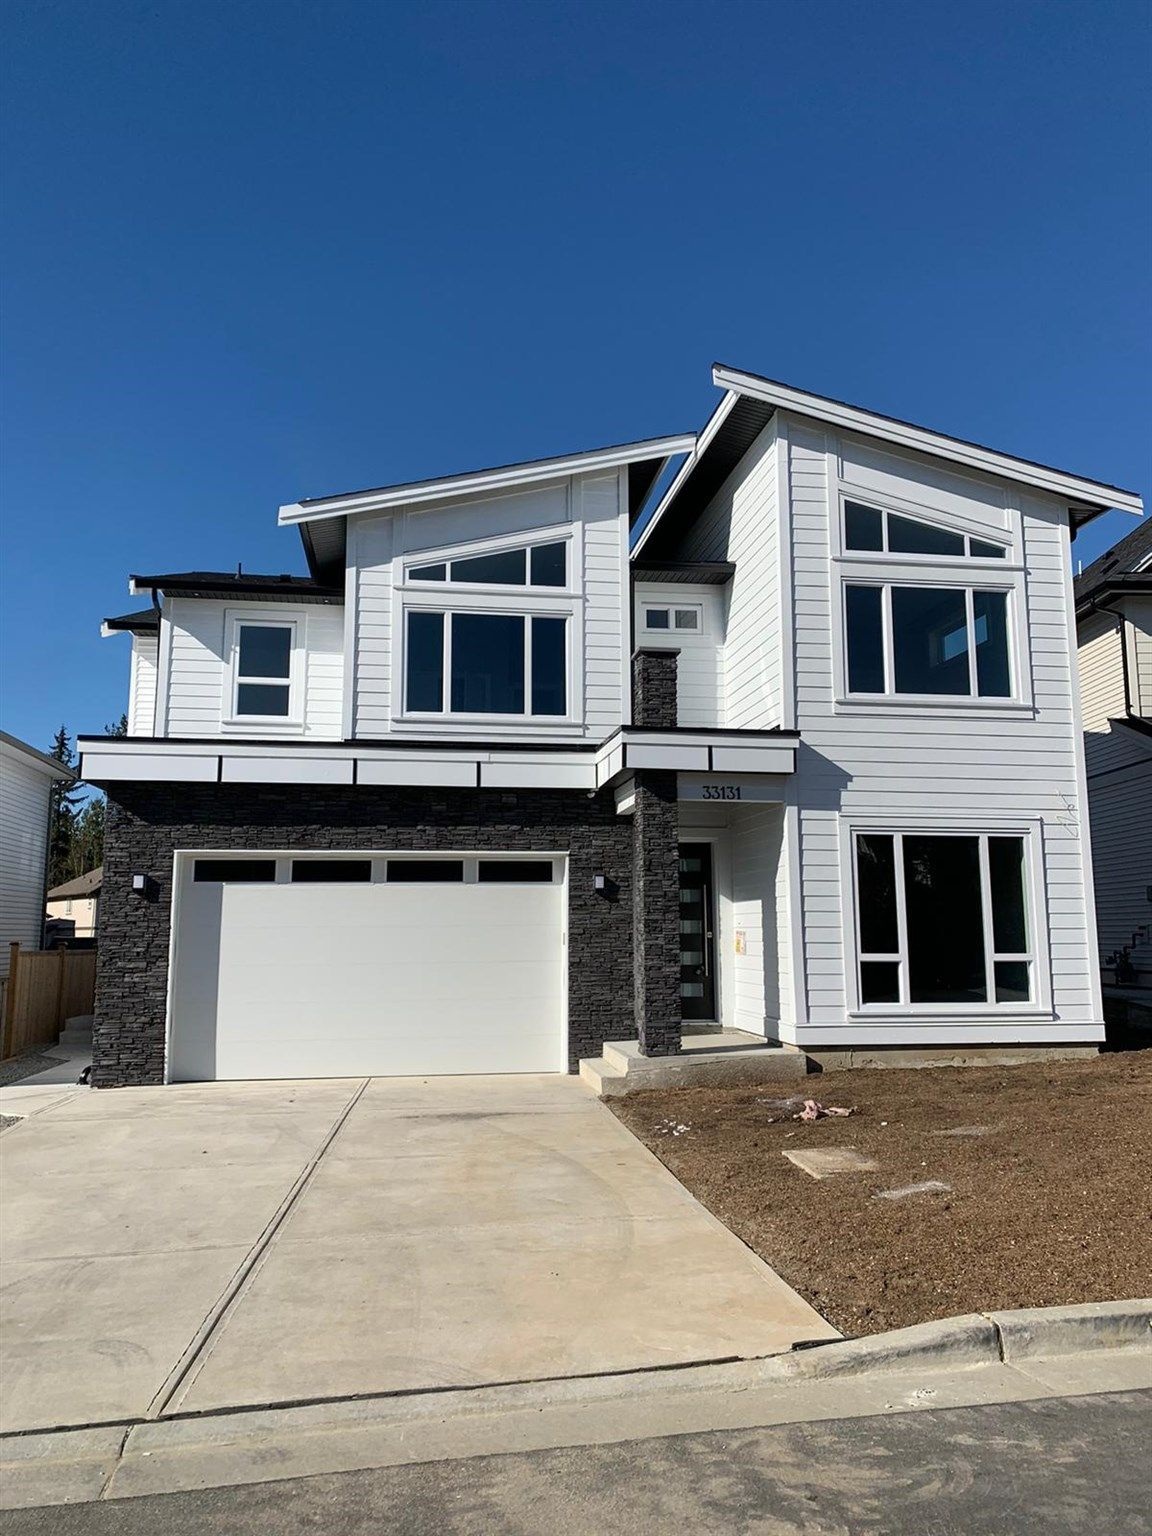 Main Photo: 33131 BENEDICT Boulevard in Mission: Mission BC House for sale : MLS®# R2594395